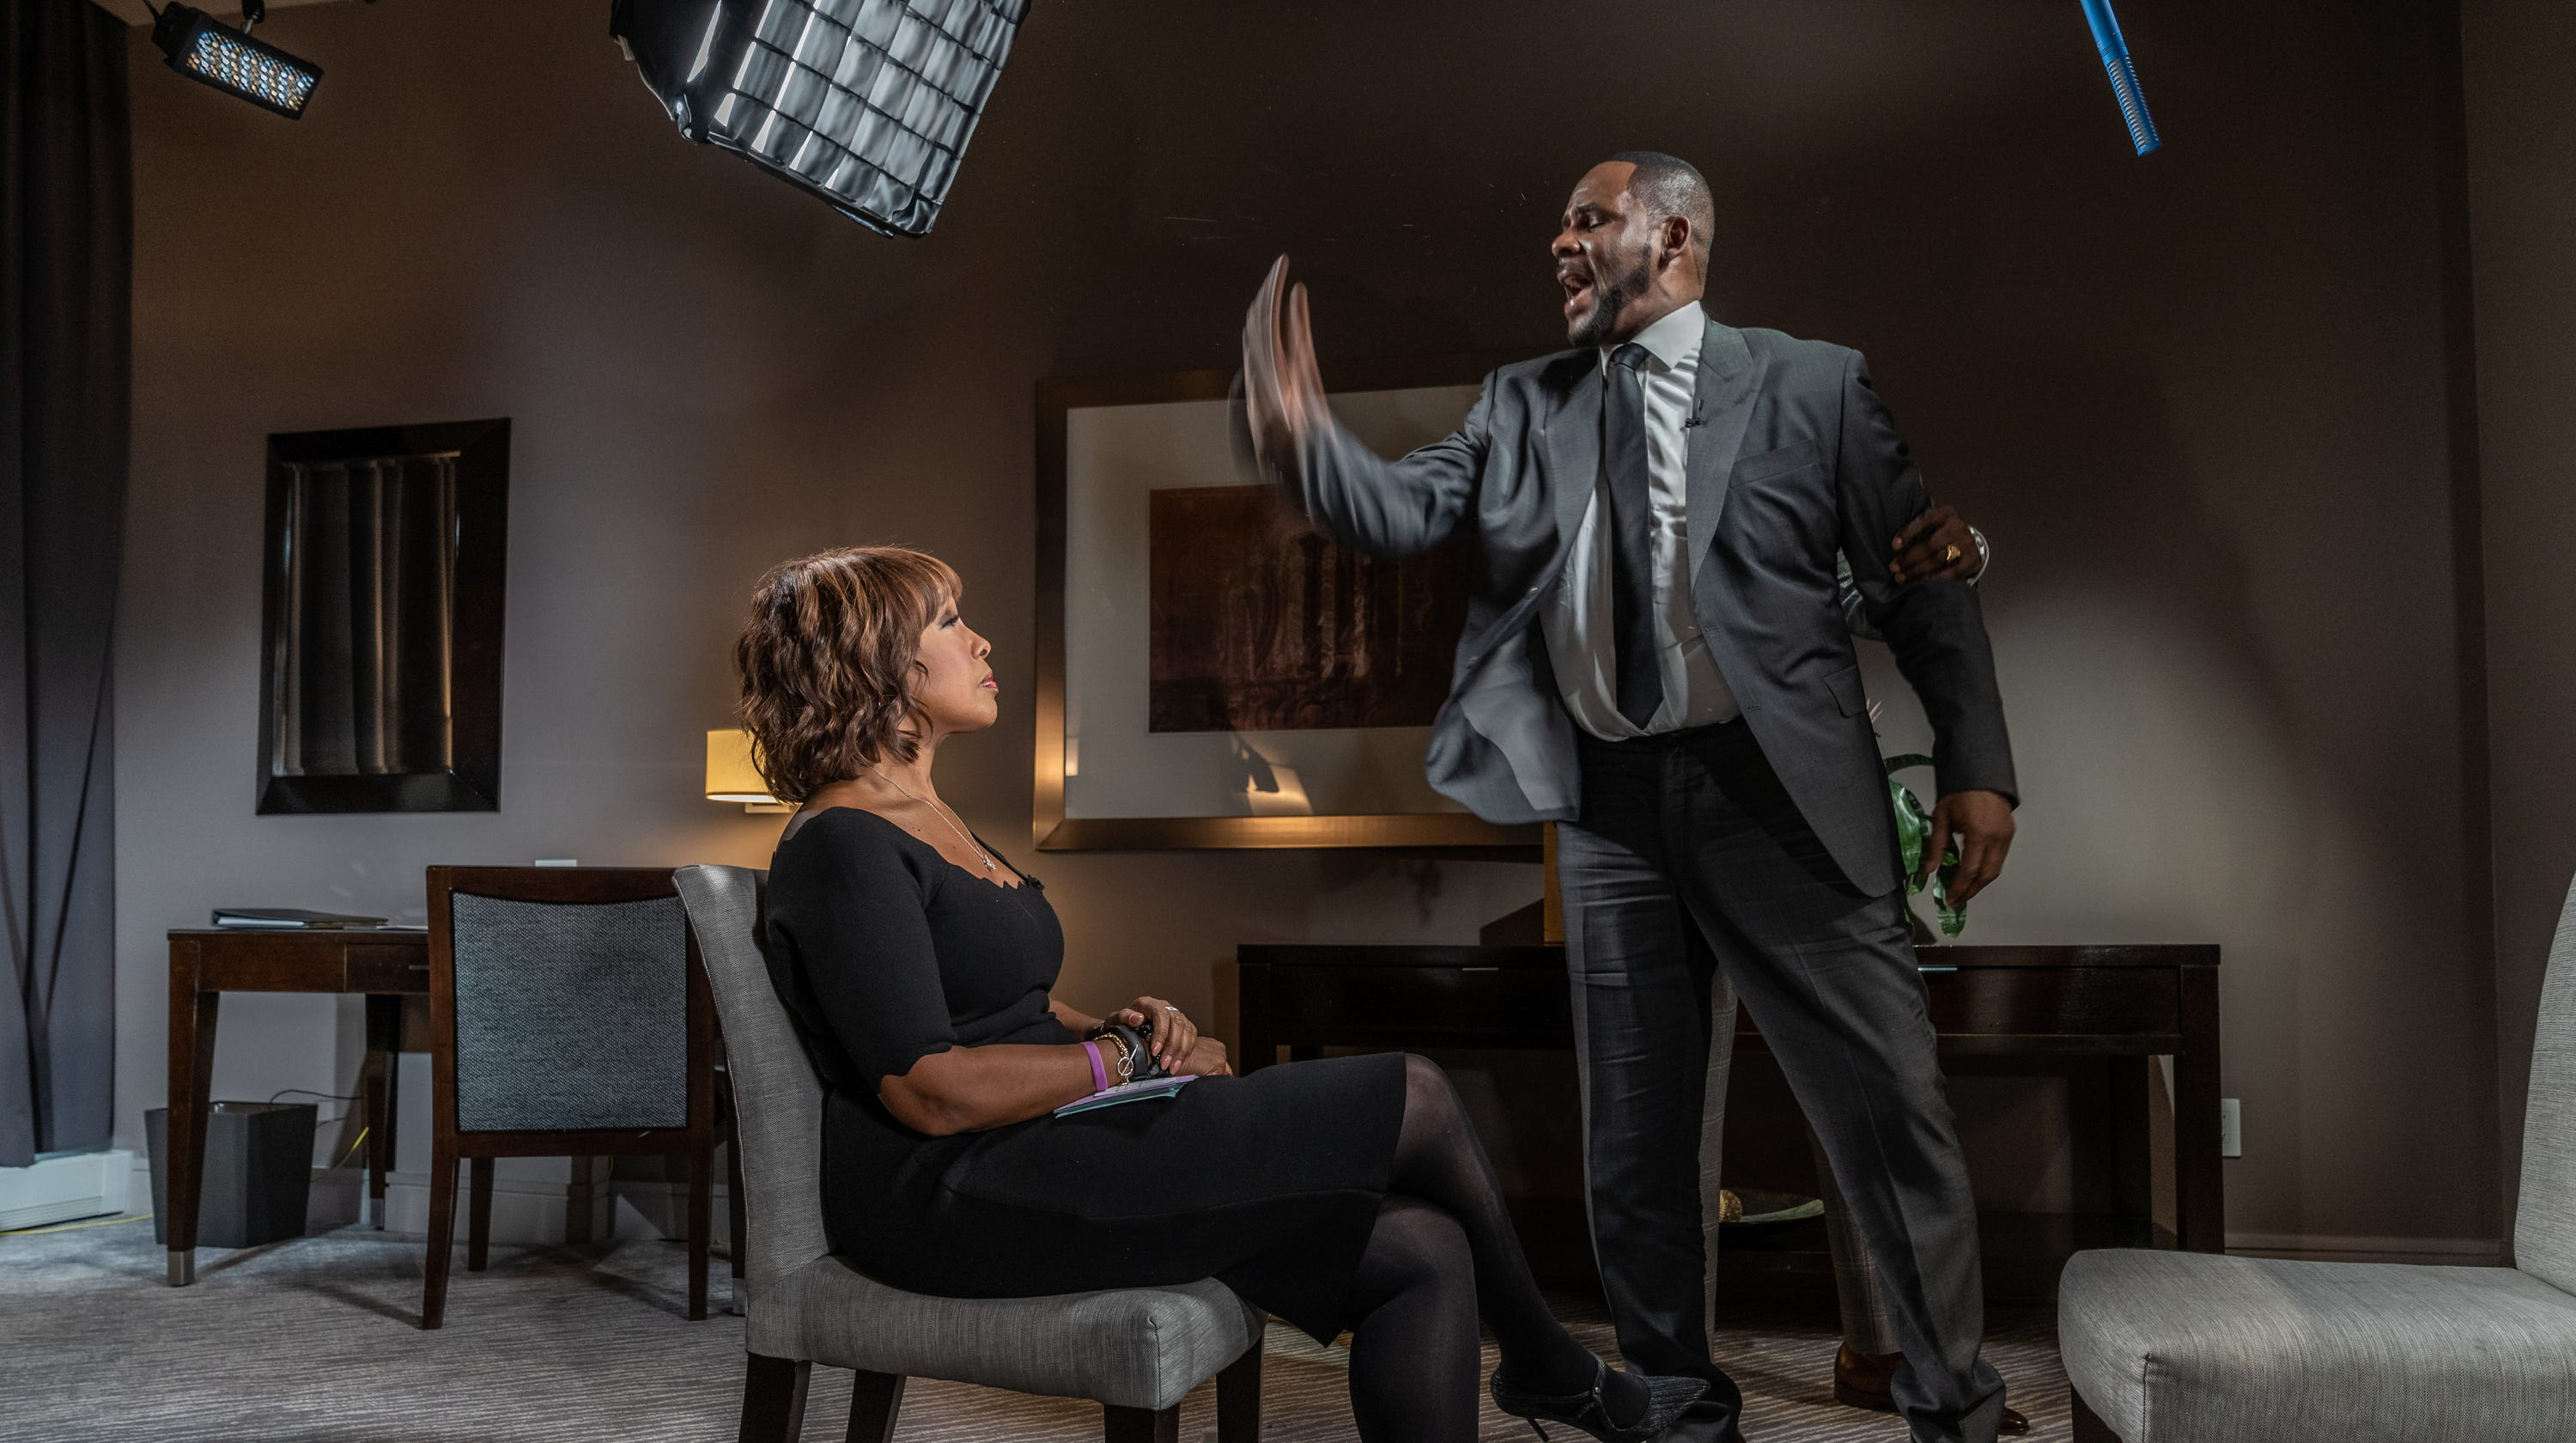 R  Kelly's interview with Gayle King helped him, publicist says